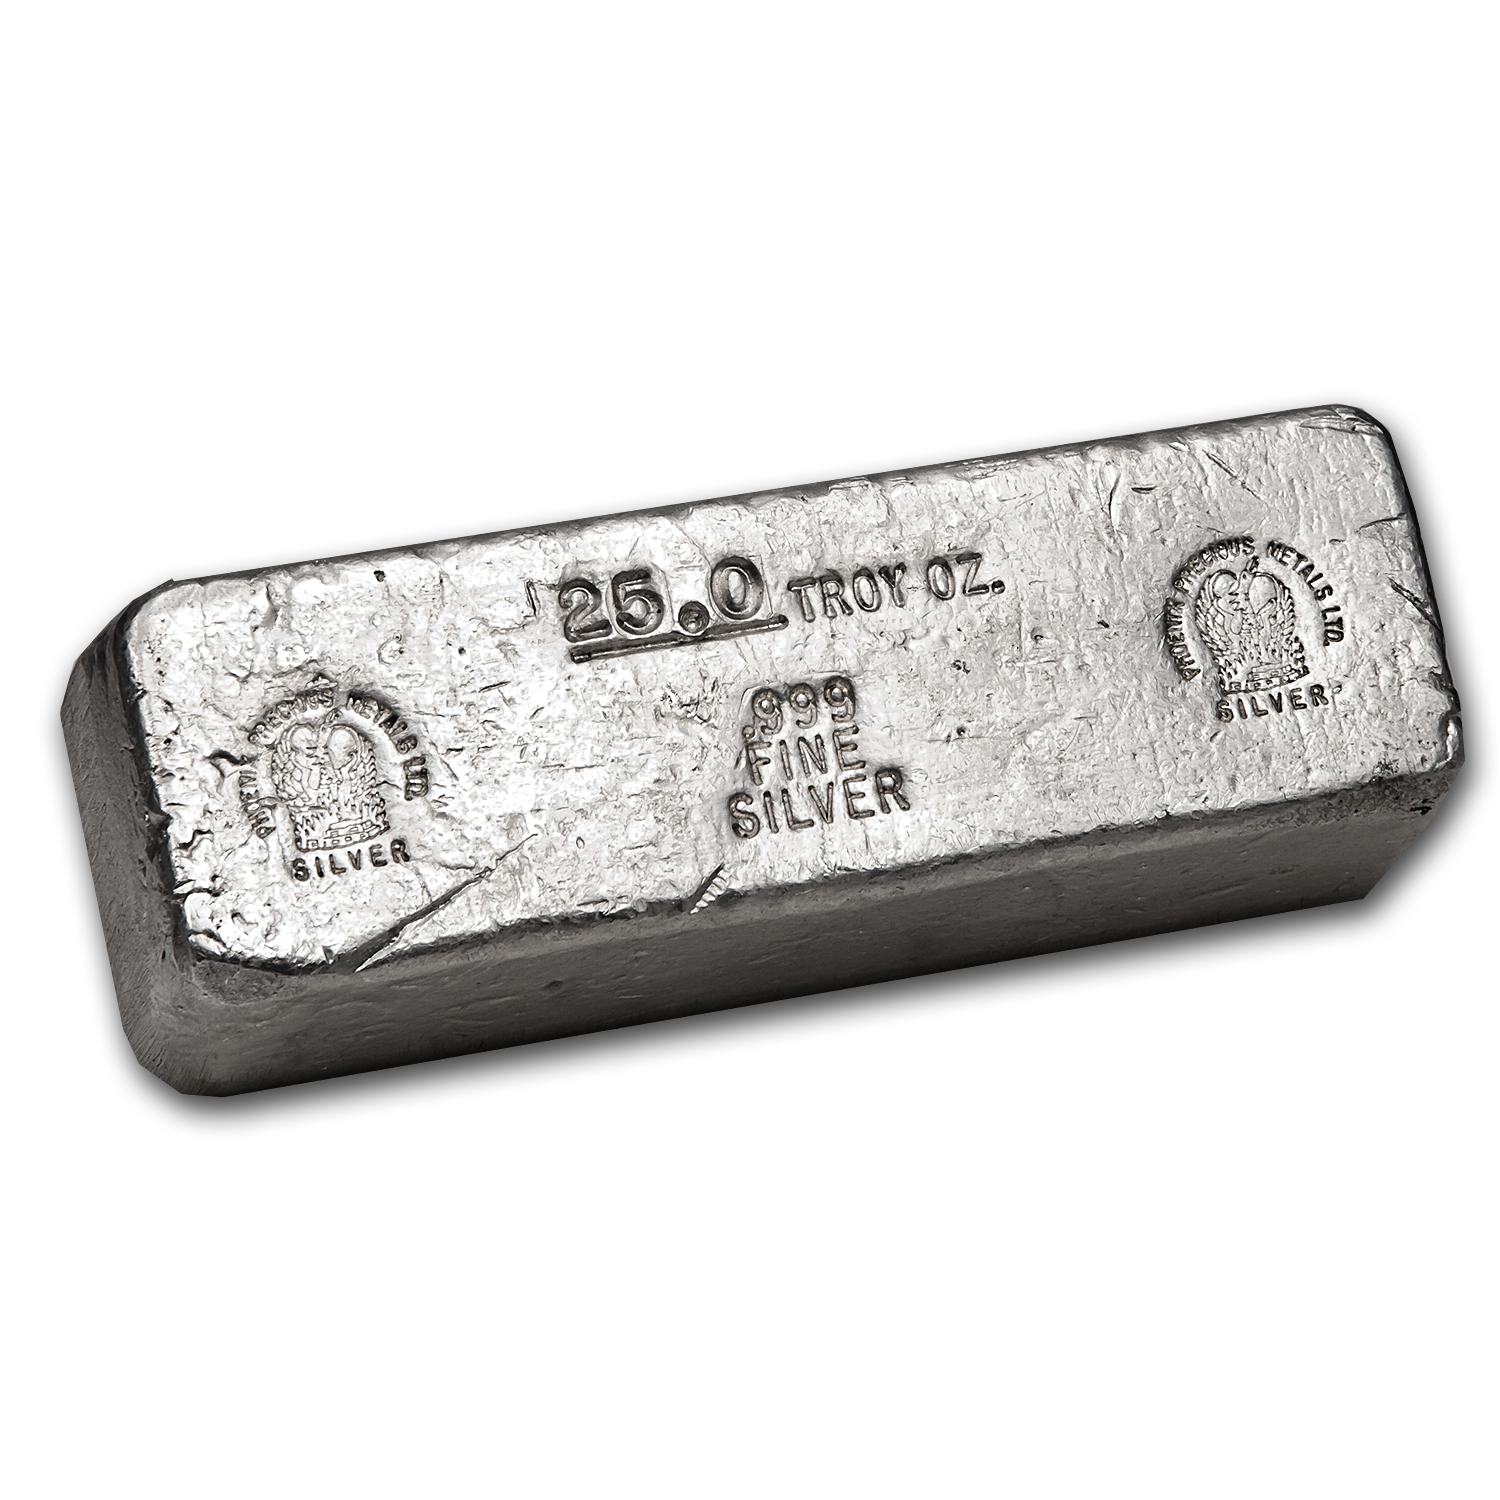 25 oz Silver Bar - Phoenix Precious Metals Ltd